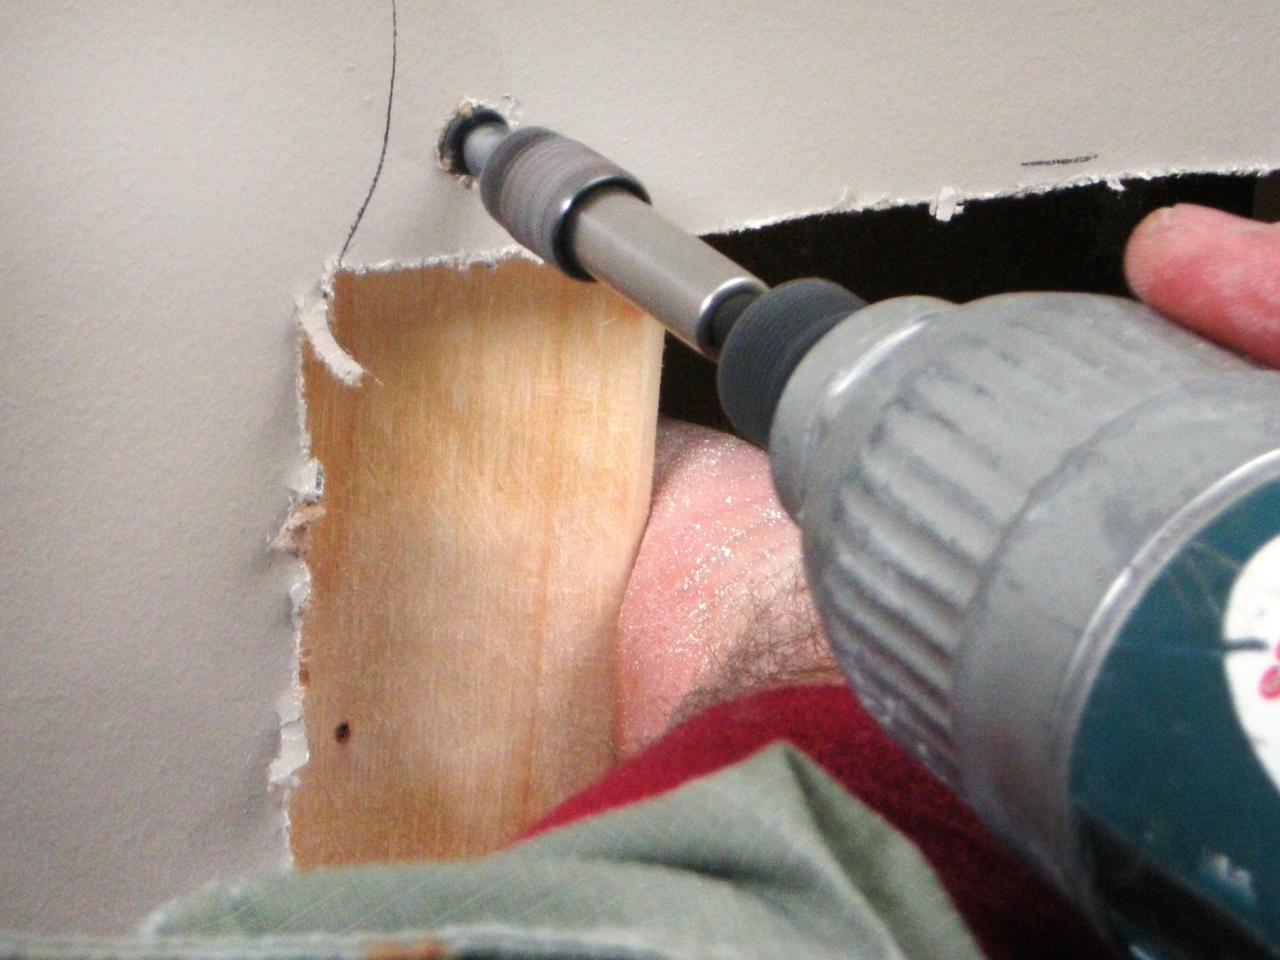 How to repair large hole in drywall - Ultimate How To_drywall Repair Med Hole 05_s4x3